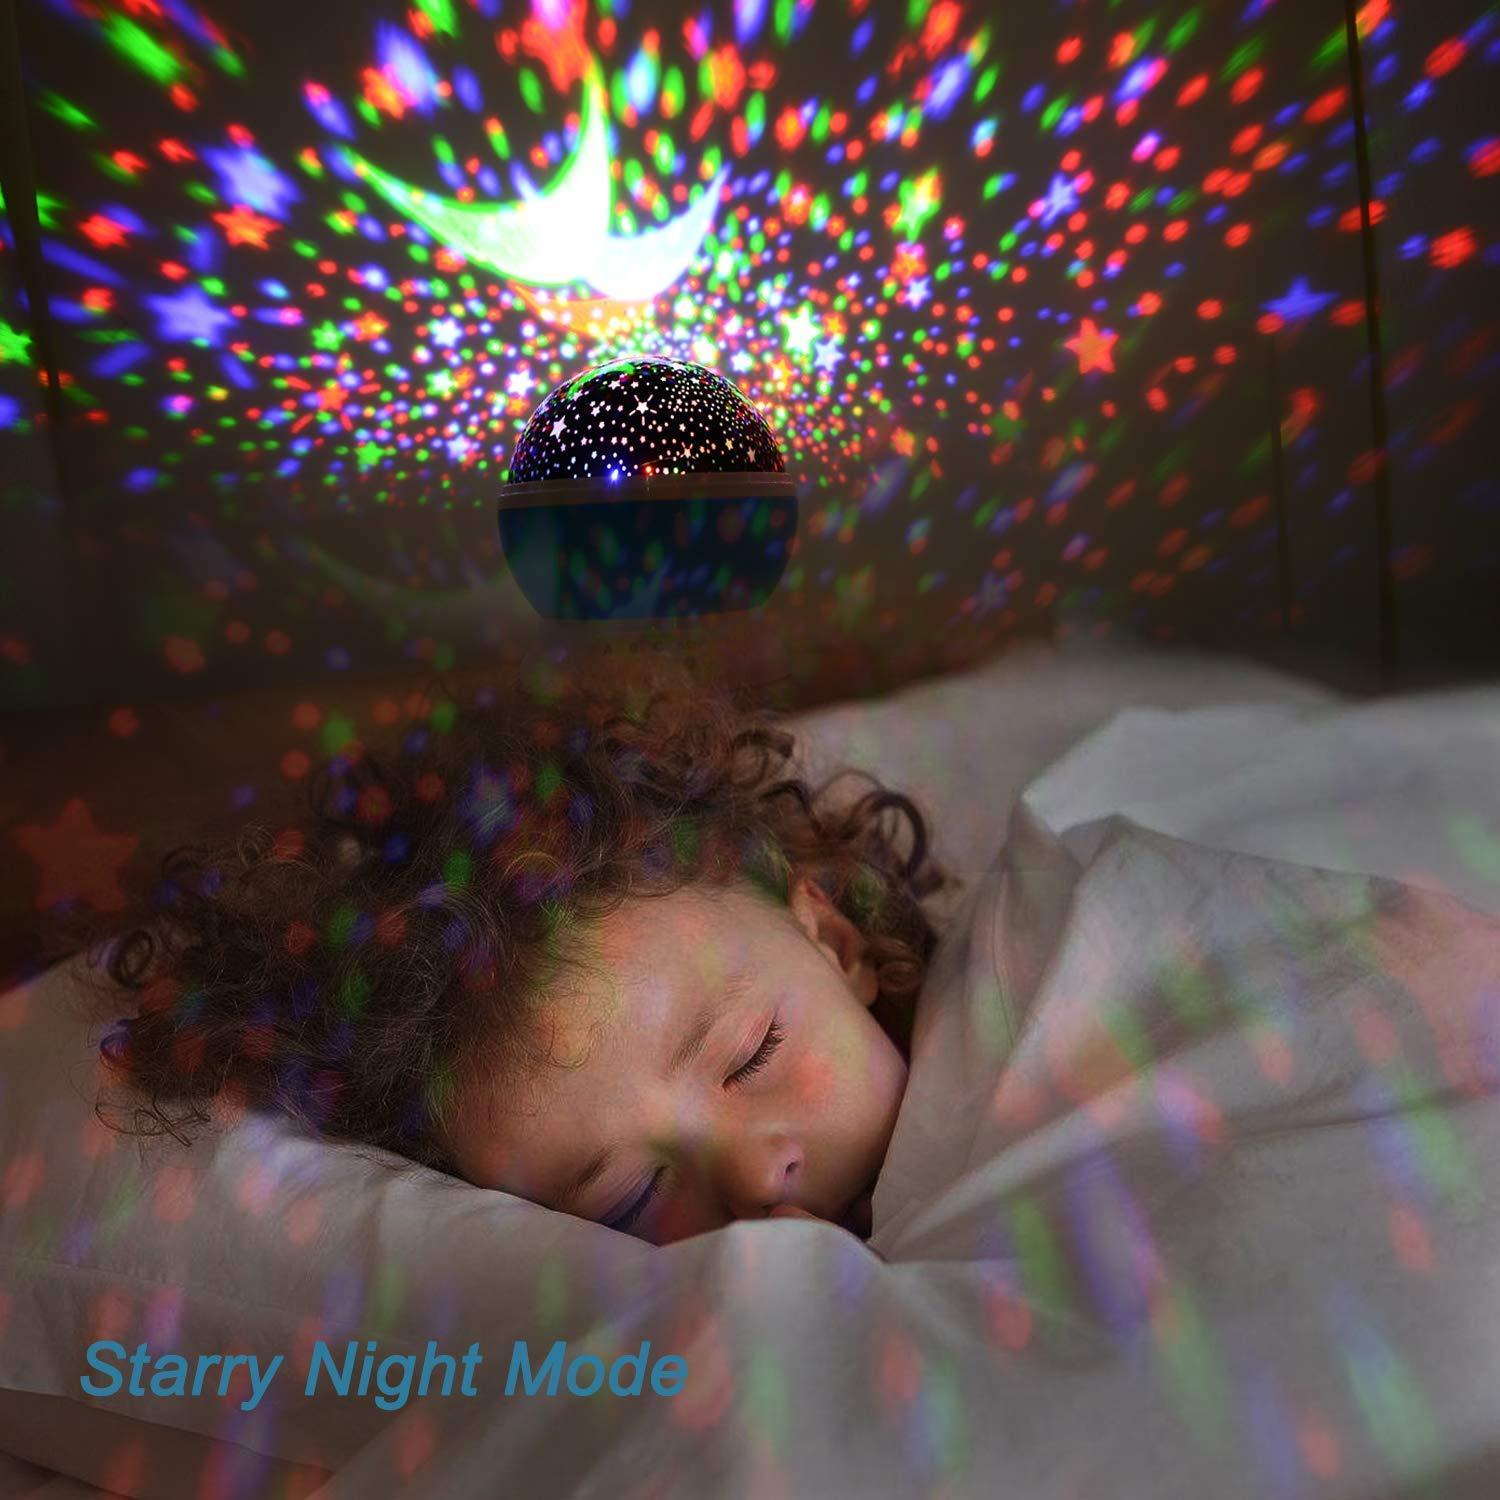 50% OFF | Best Baby Gift For Bedroom 360 Degree Rotation Starry Sky Night Light Projector With USB Cable